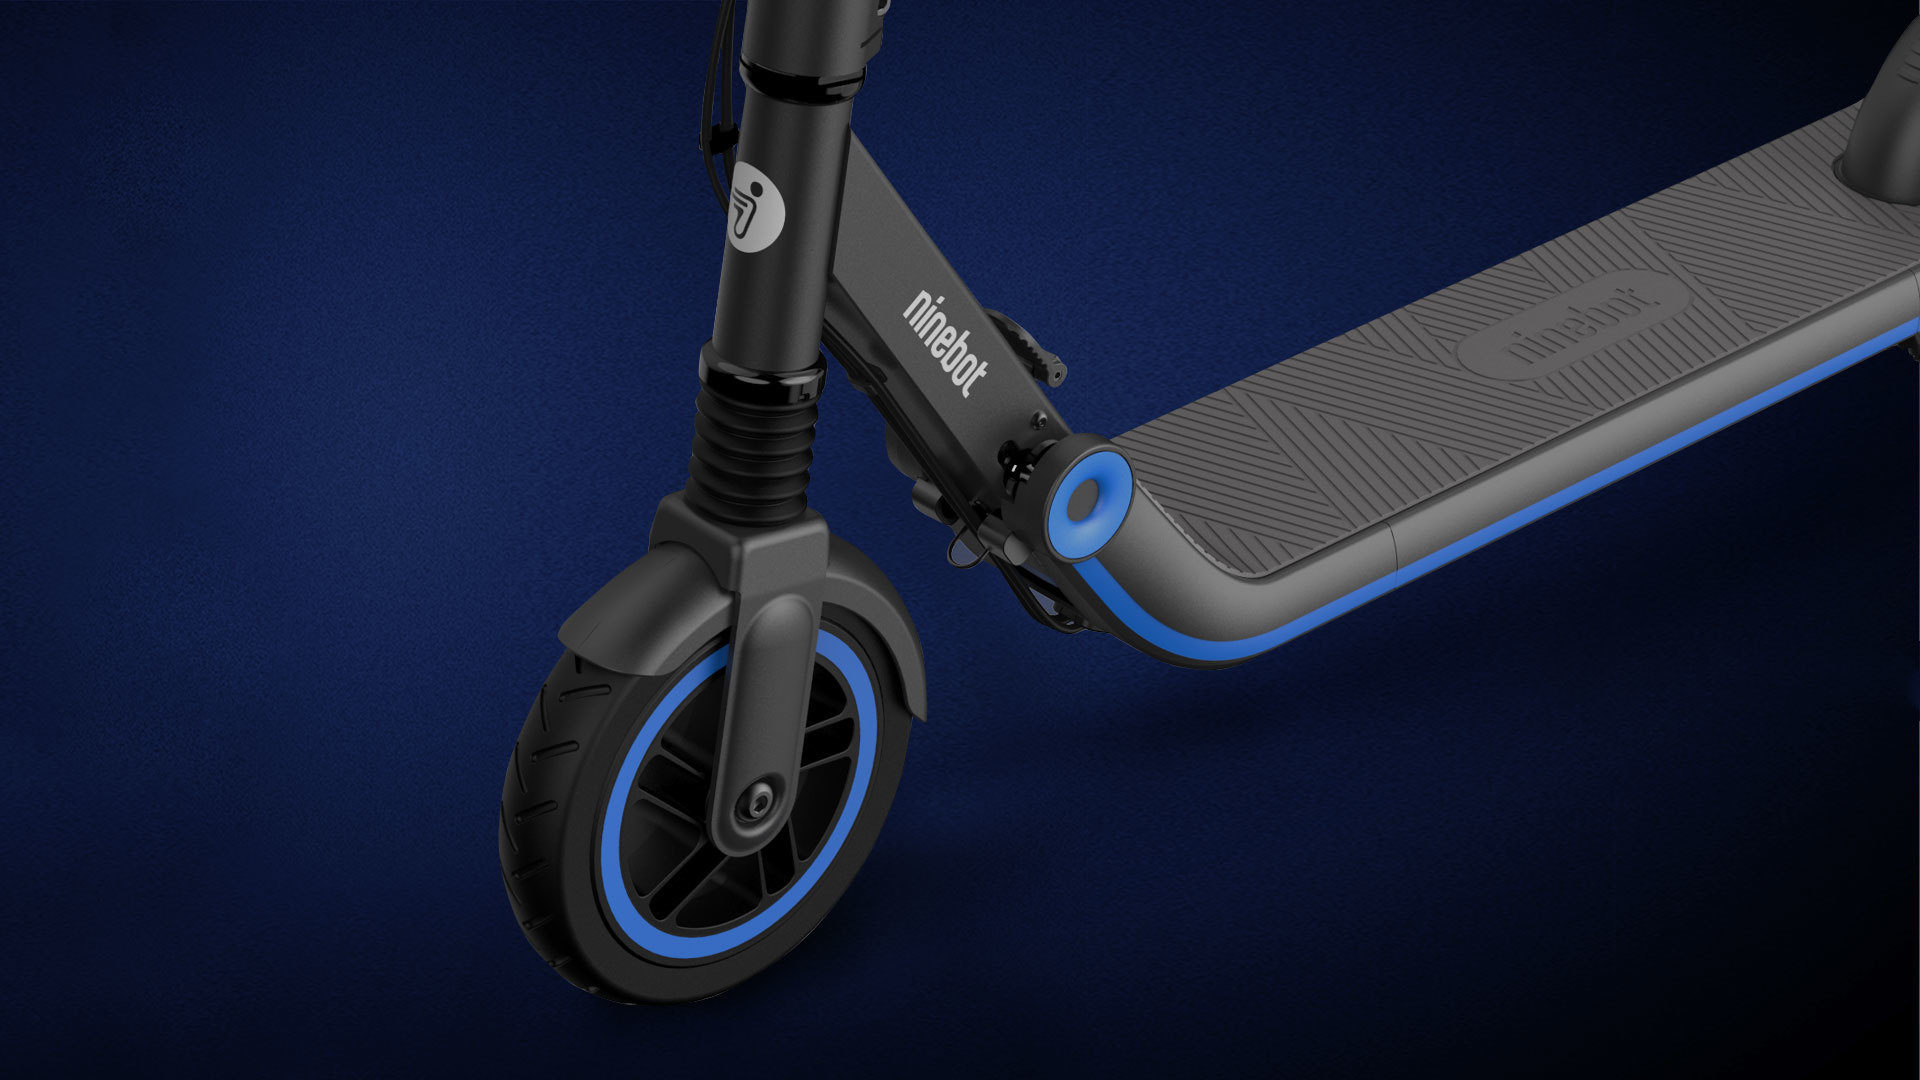 [hero] Ninebot eKickScooter ZING E10 Powered by Segway